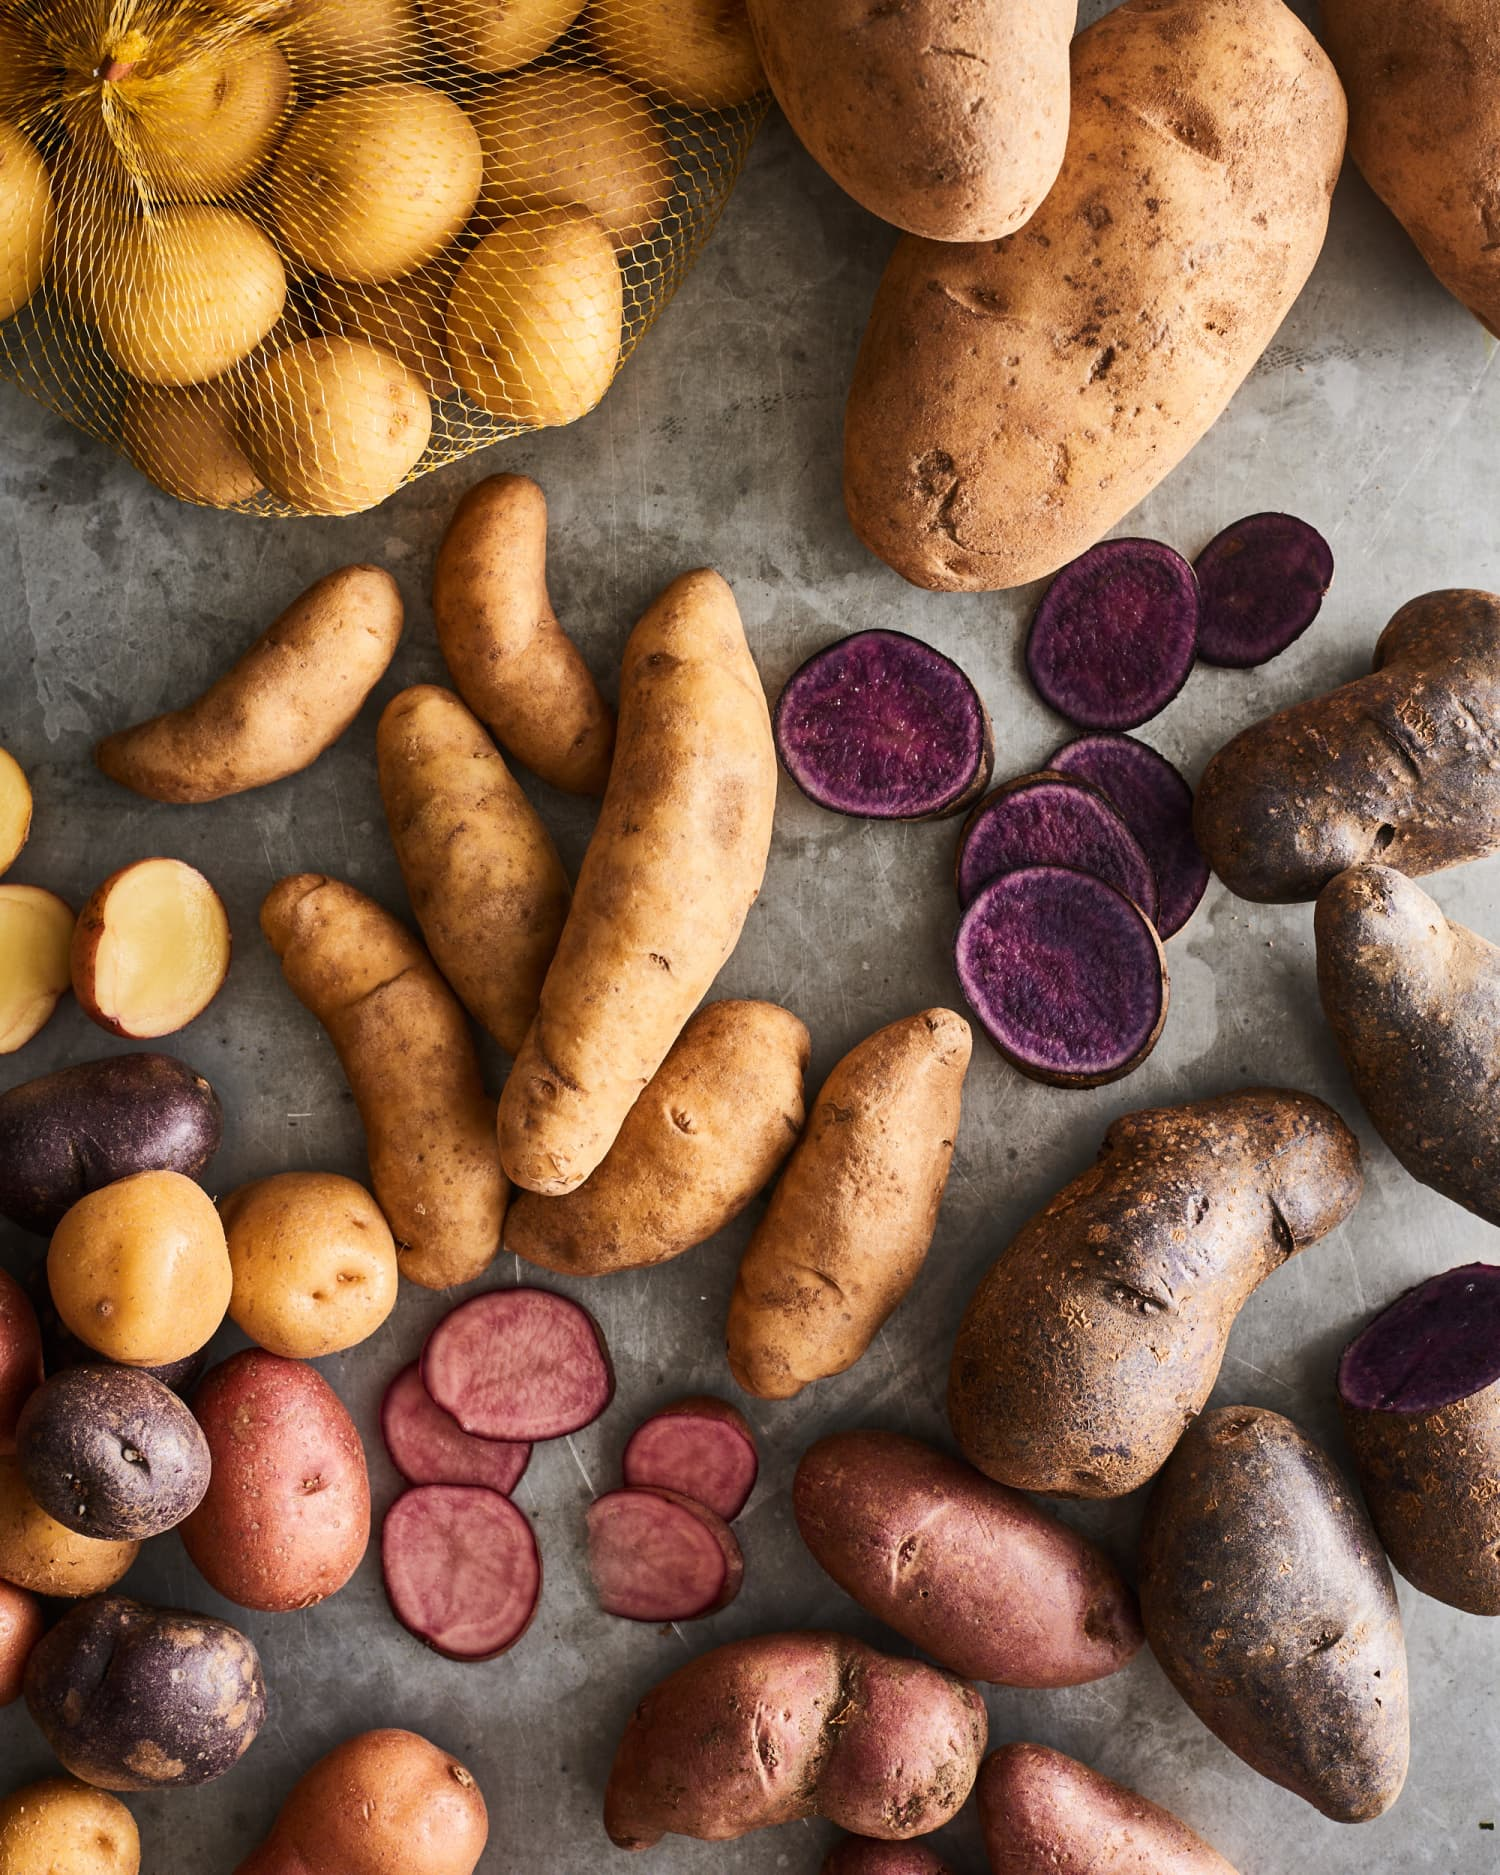 The Essential Methods for Cooking a Potato in One Place (Plus Our Top 20 Recipes!)